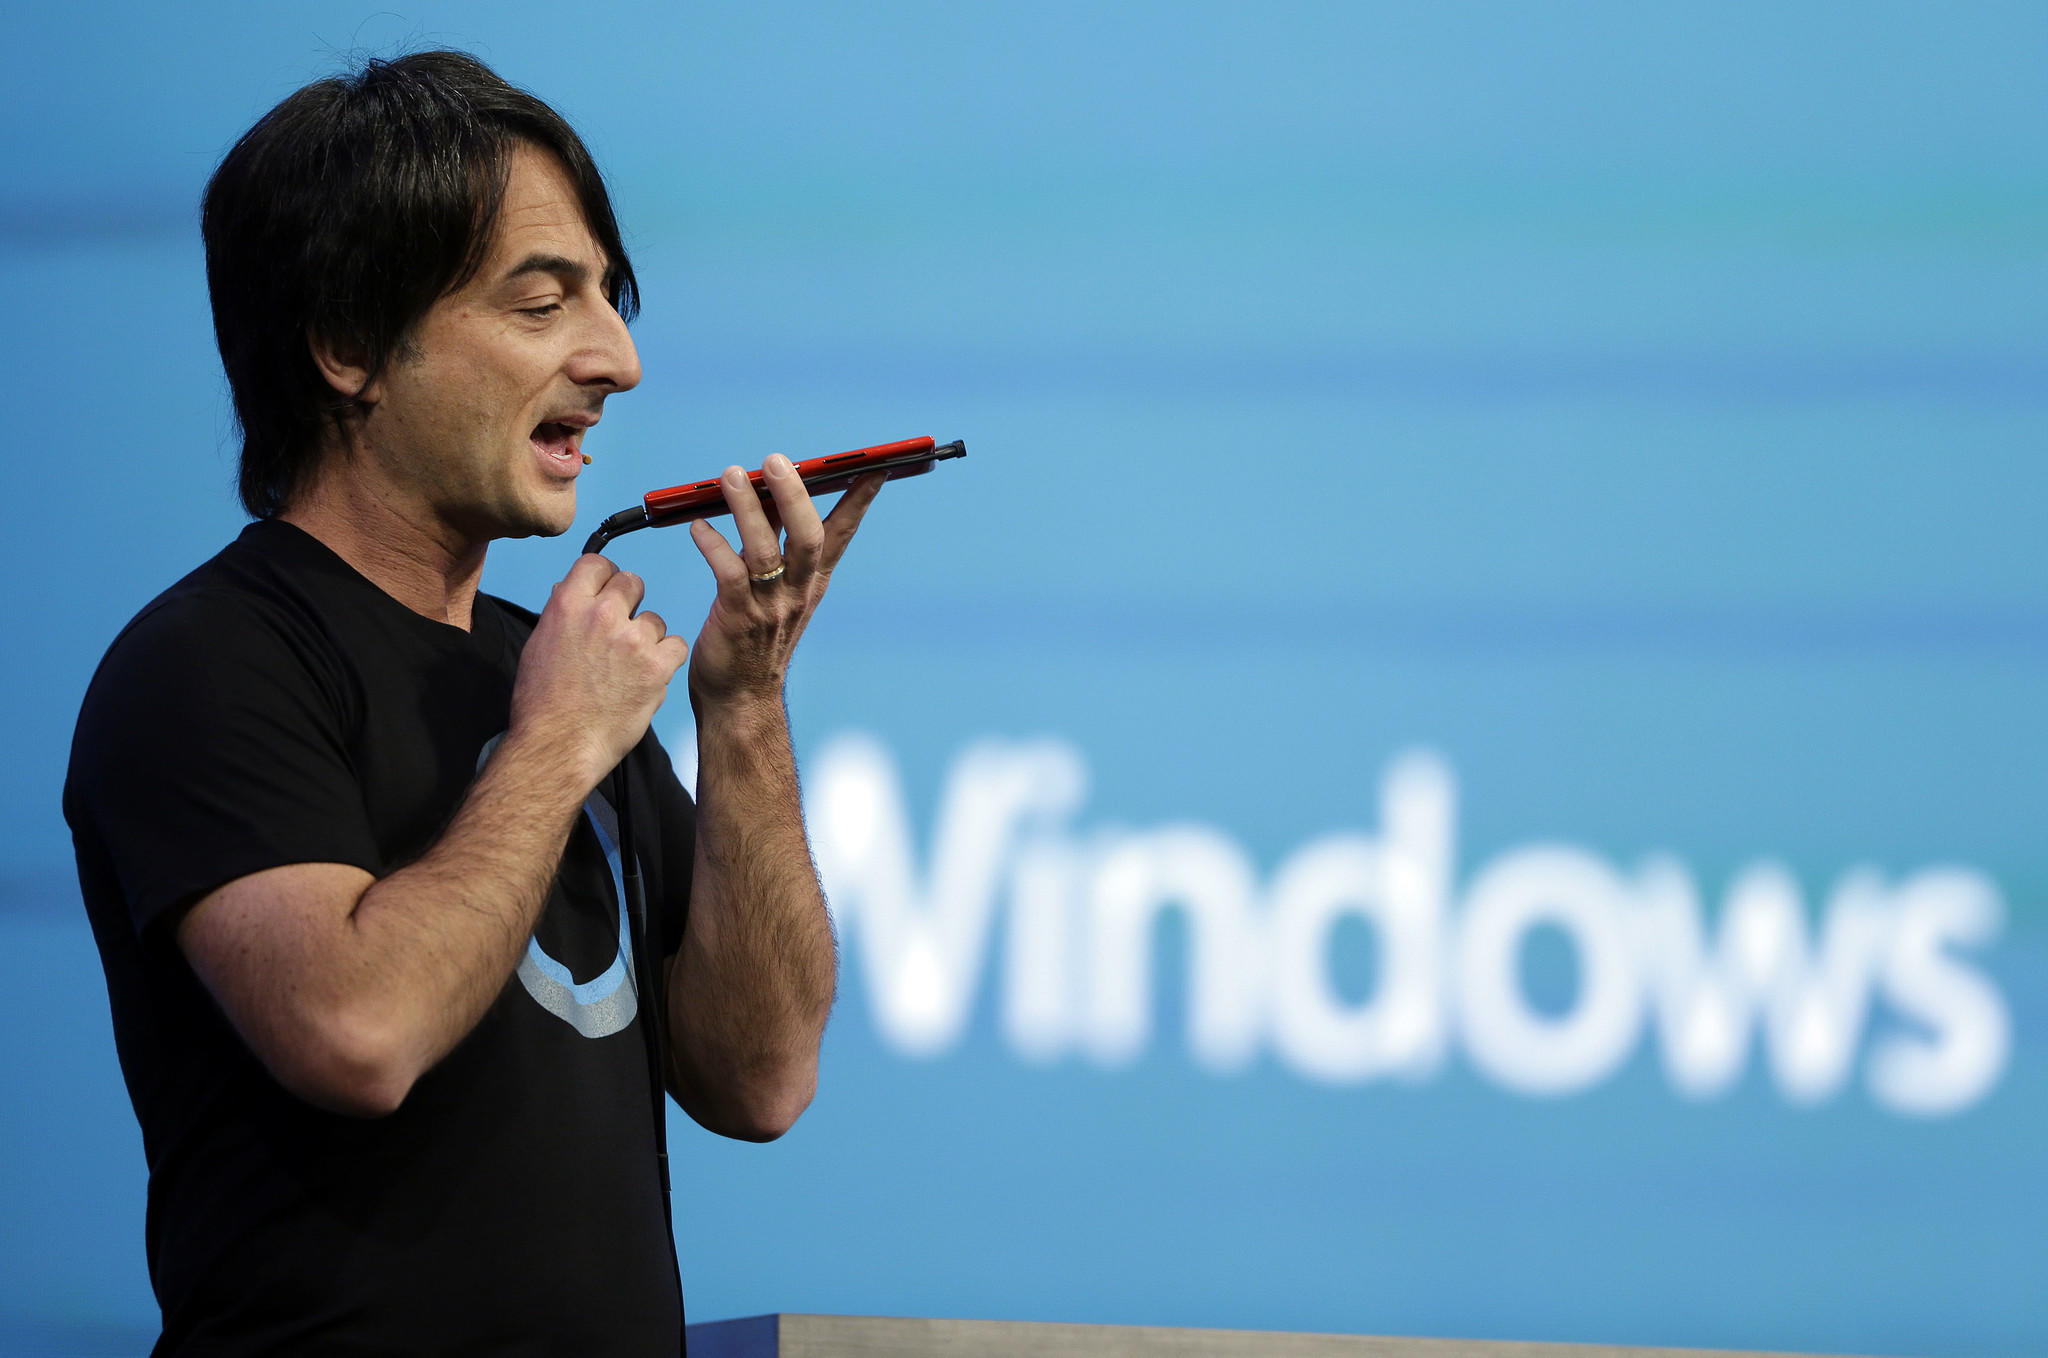 Microsoft corporate Vice President Joe Belfiore of the operating systems group demonstrates the new Cortana personal assistant during the keynote address of the Build Conference on Wednesday.